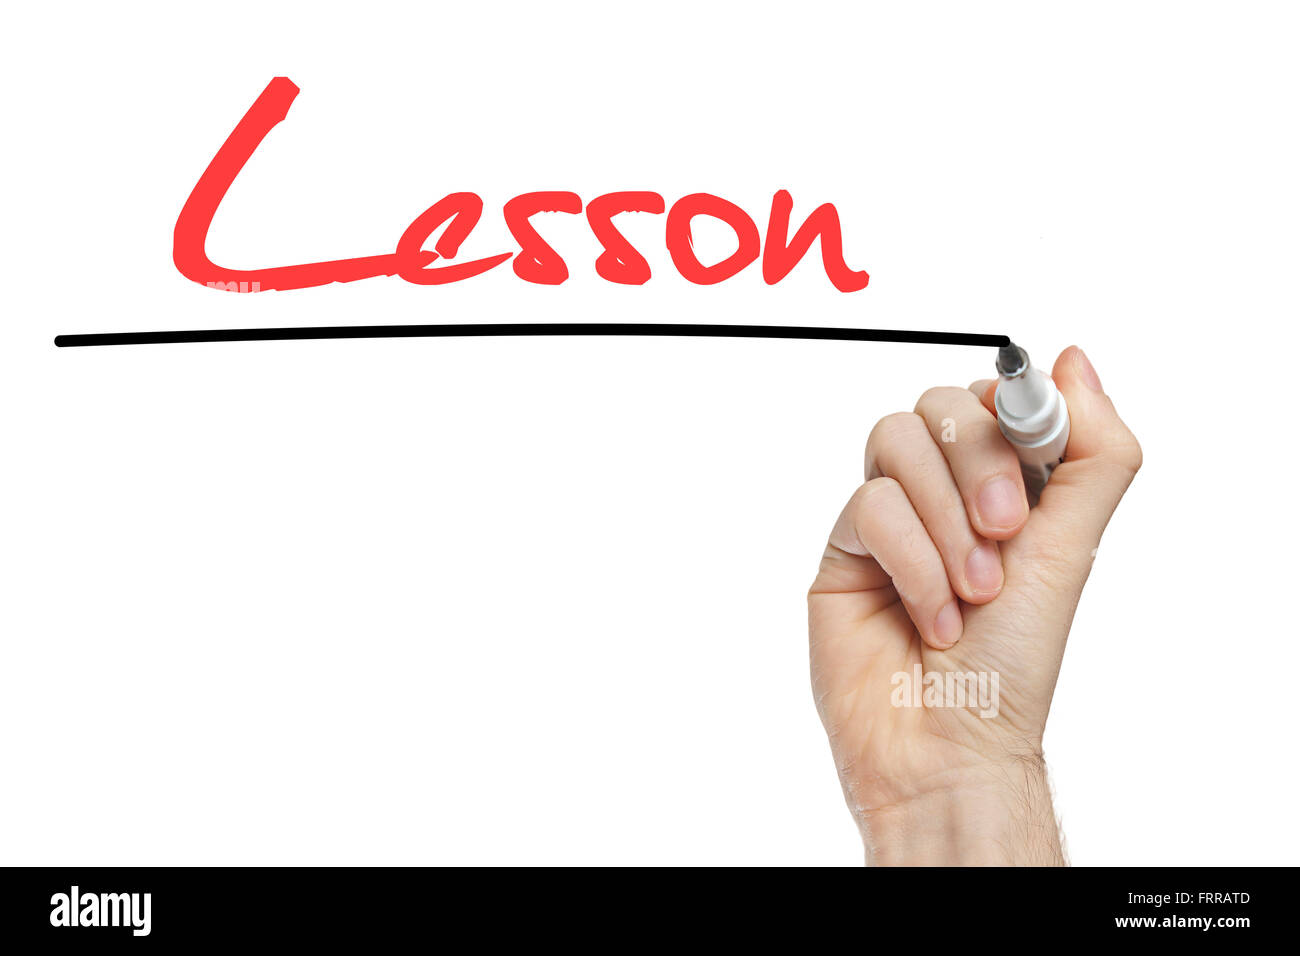 Hand writing lesson on a white board - education concept - Stock Image